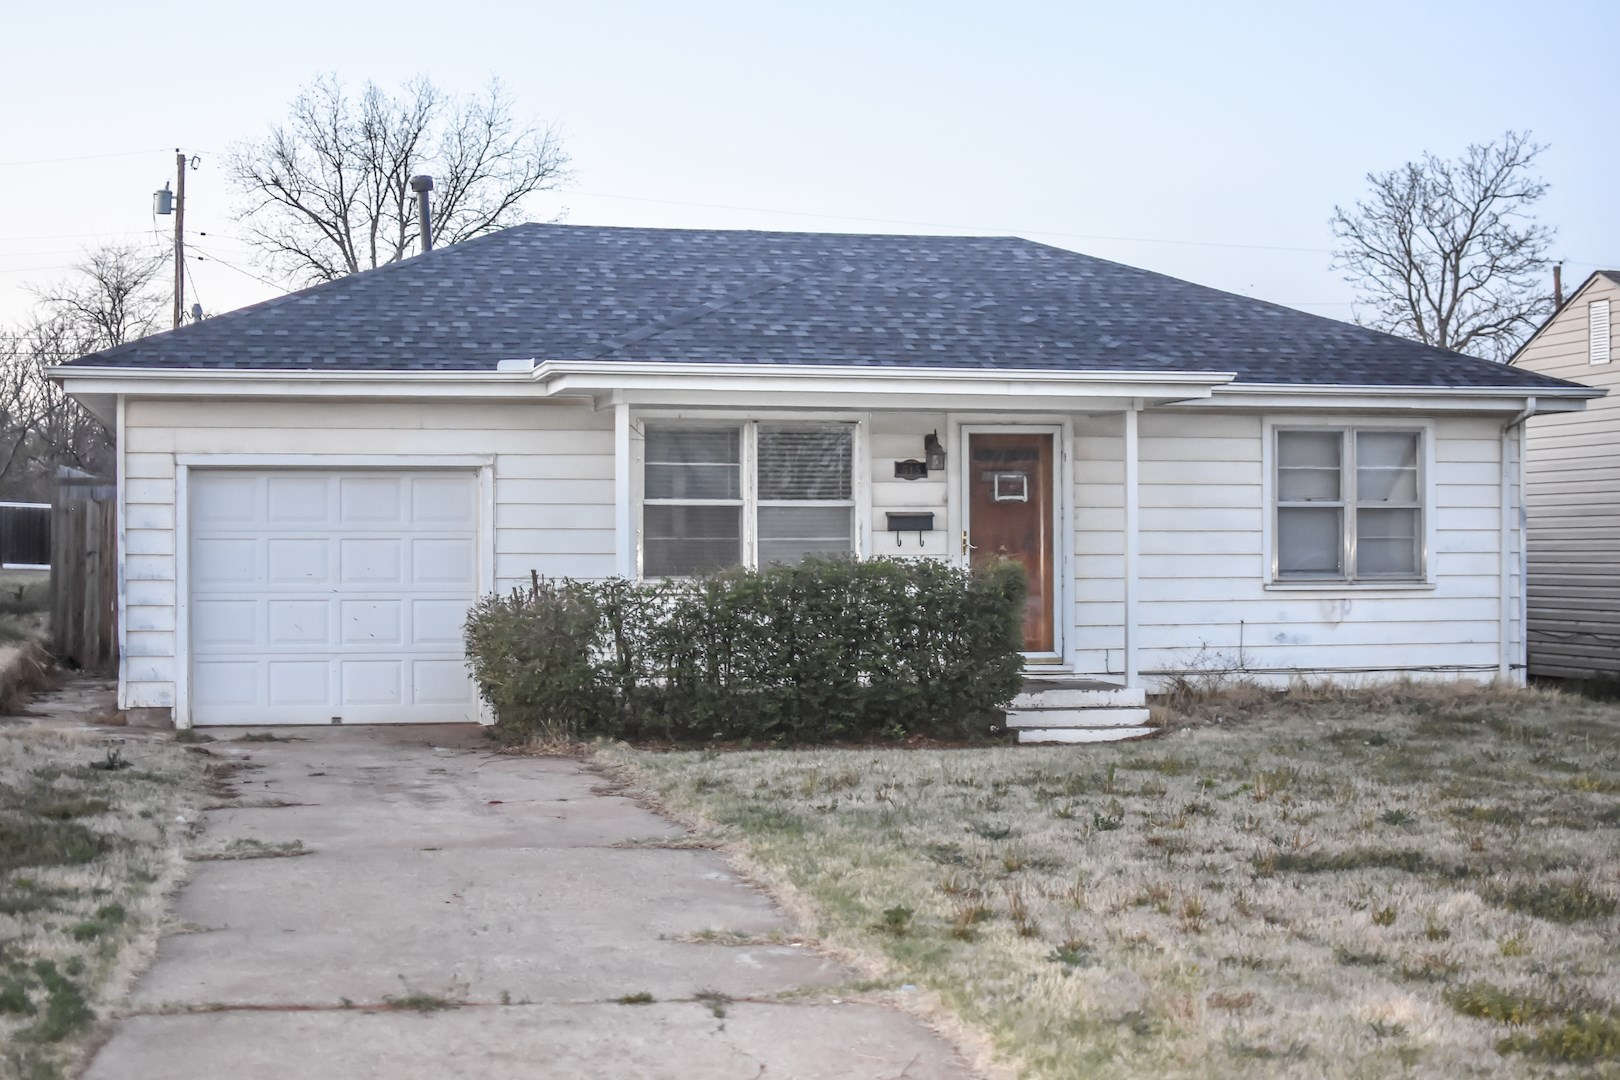 GREAT INVESTMENT PROPERTY PRICED TO SELL!